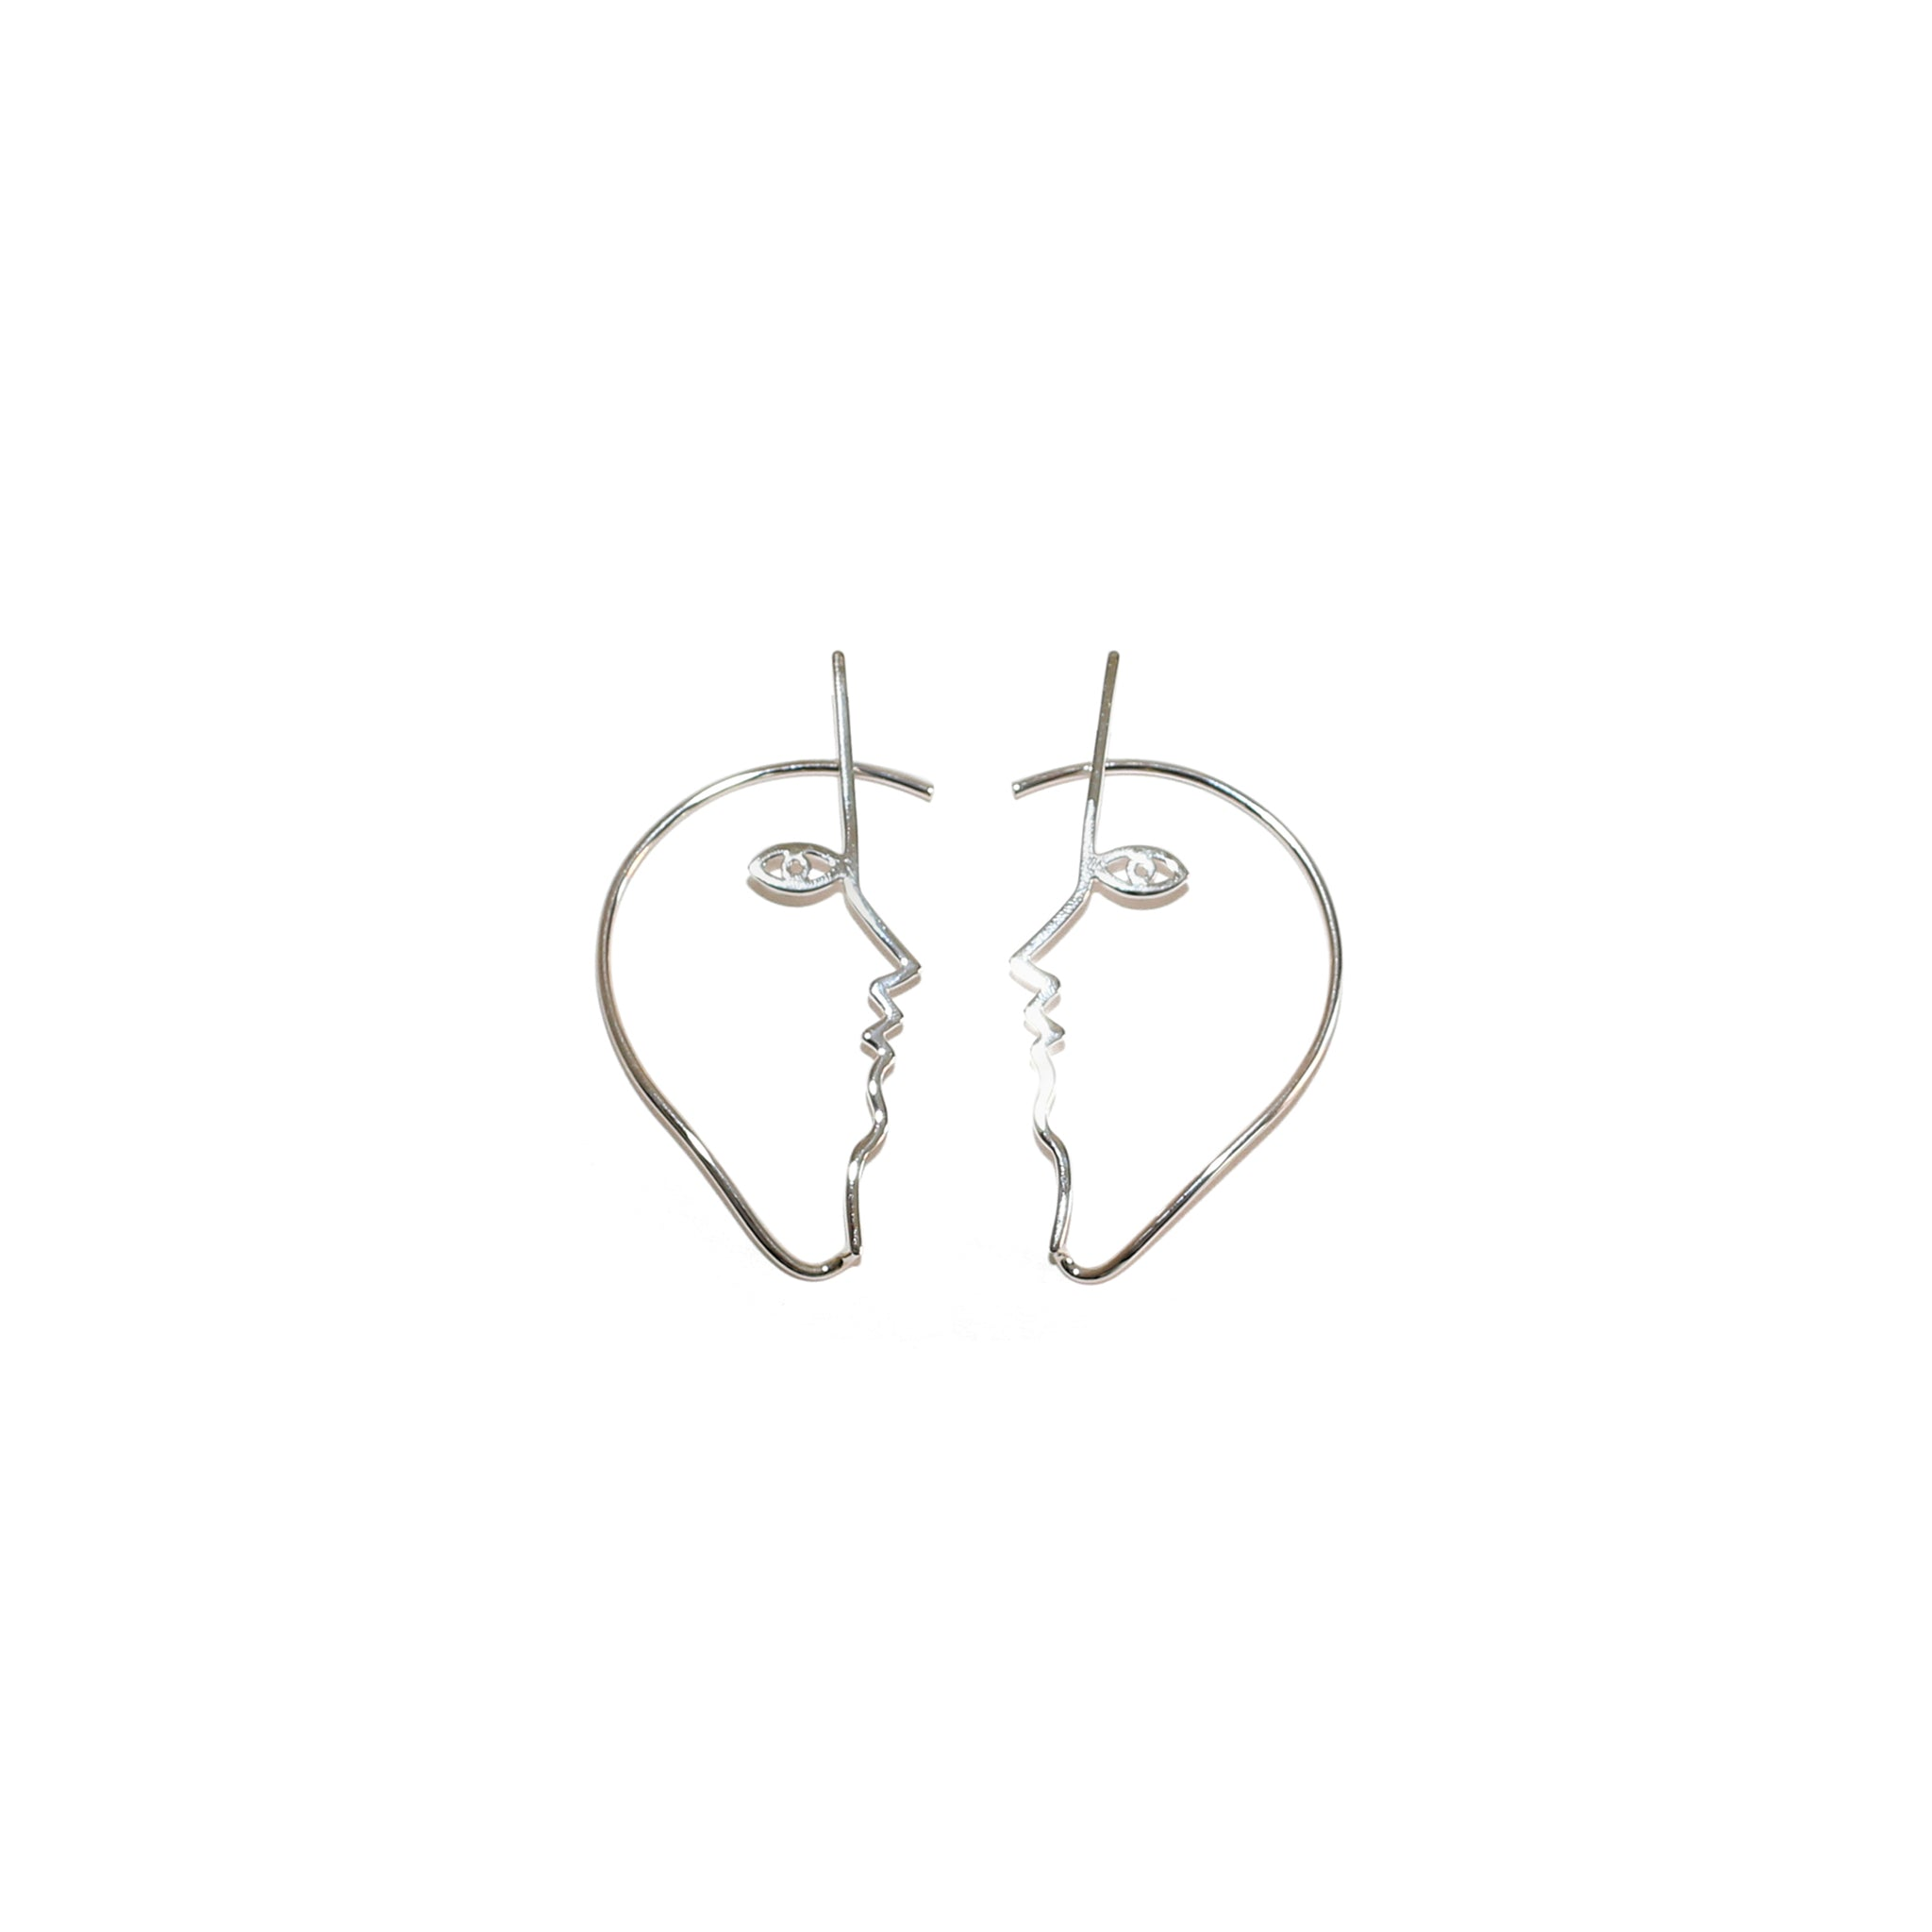 Mara Paris Dina Ear Cuffs Sterling Silver